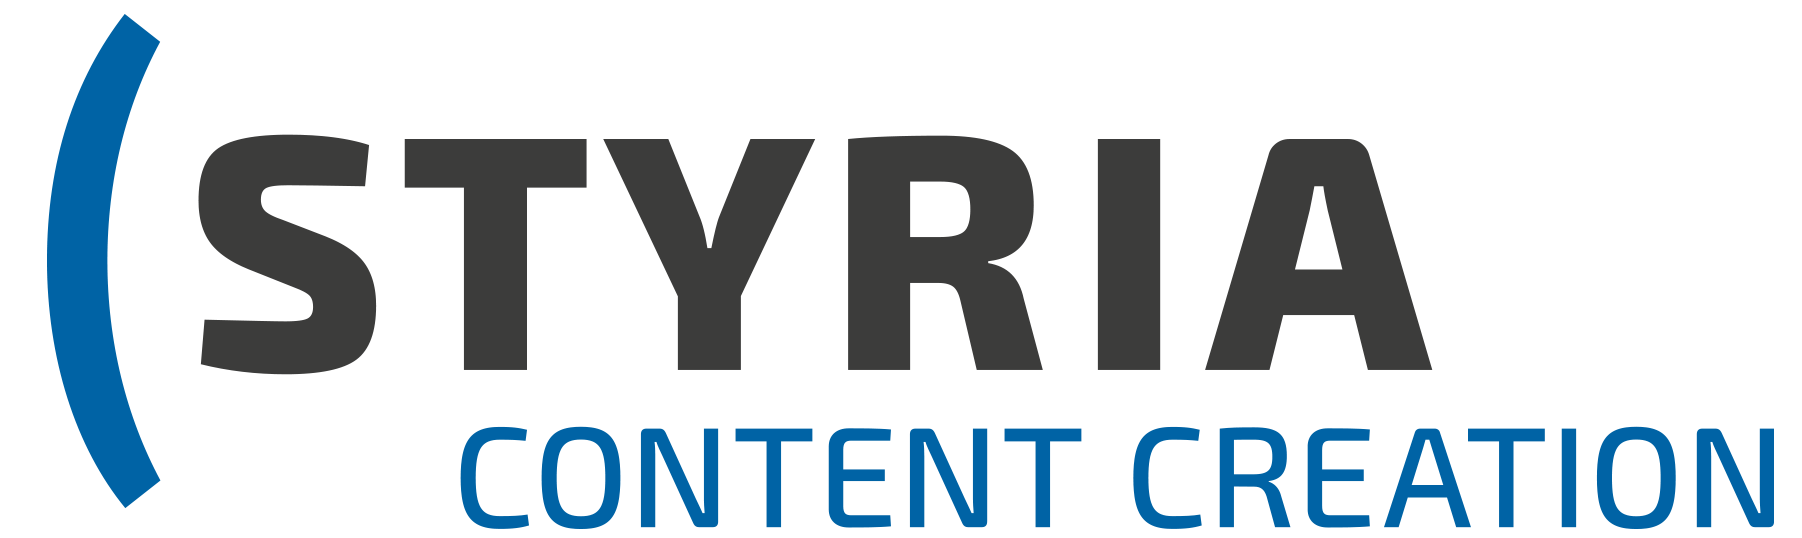 Styria Content Creation GmbH & Co KG